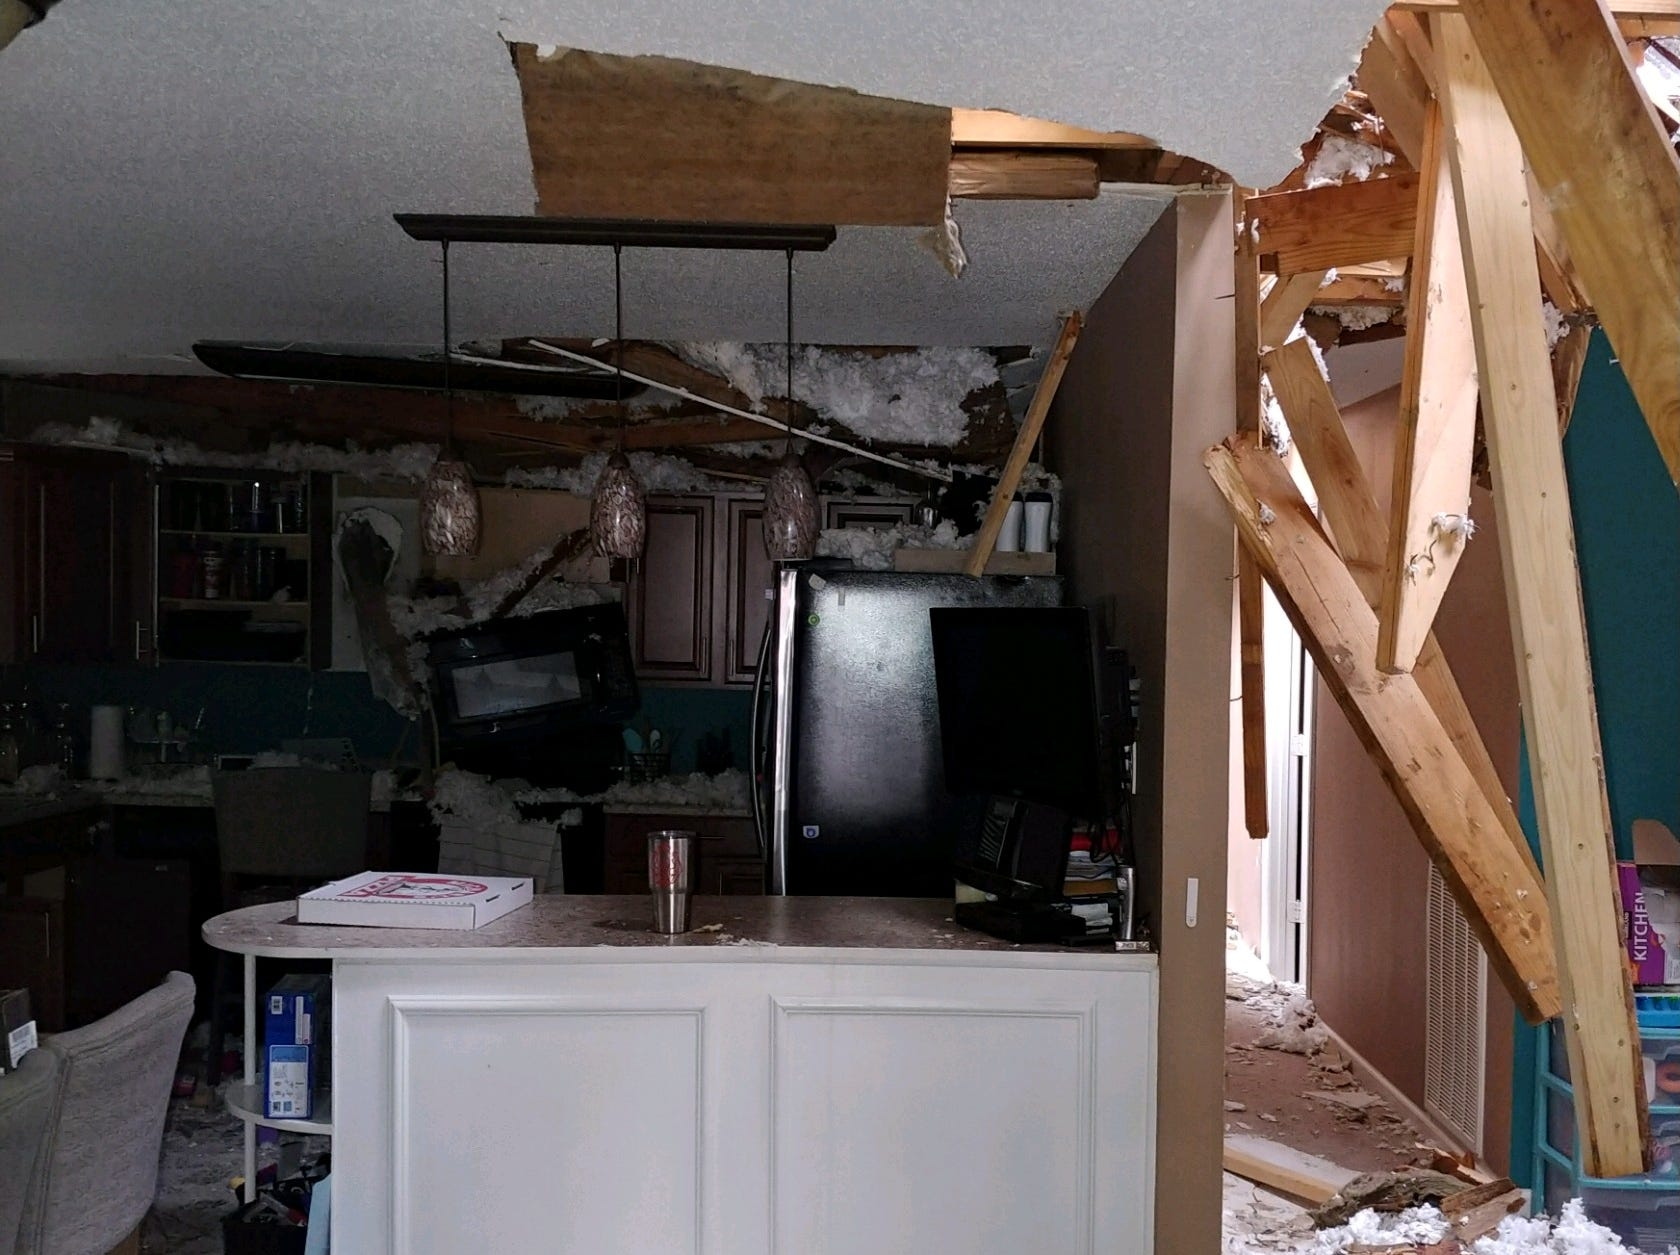 Damage to the Tinsley family home on Hickory Grove Blvd. in Clarksville after a tree smashed into it on New Year's Eve.